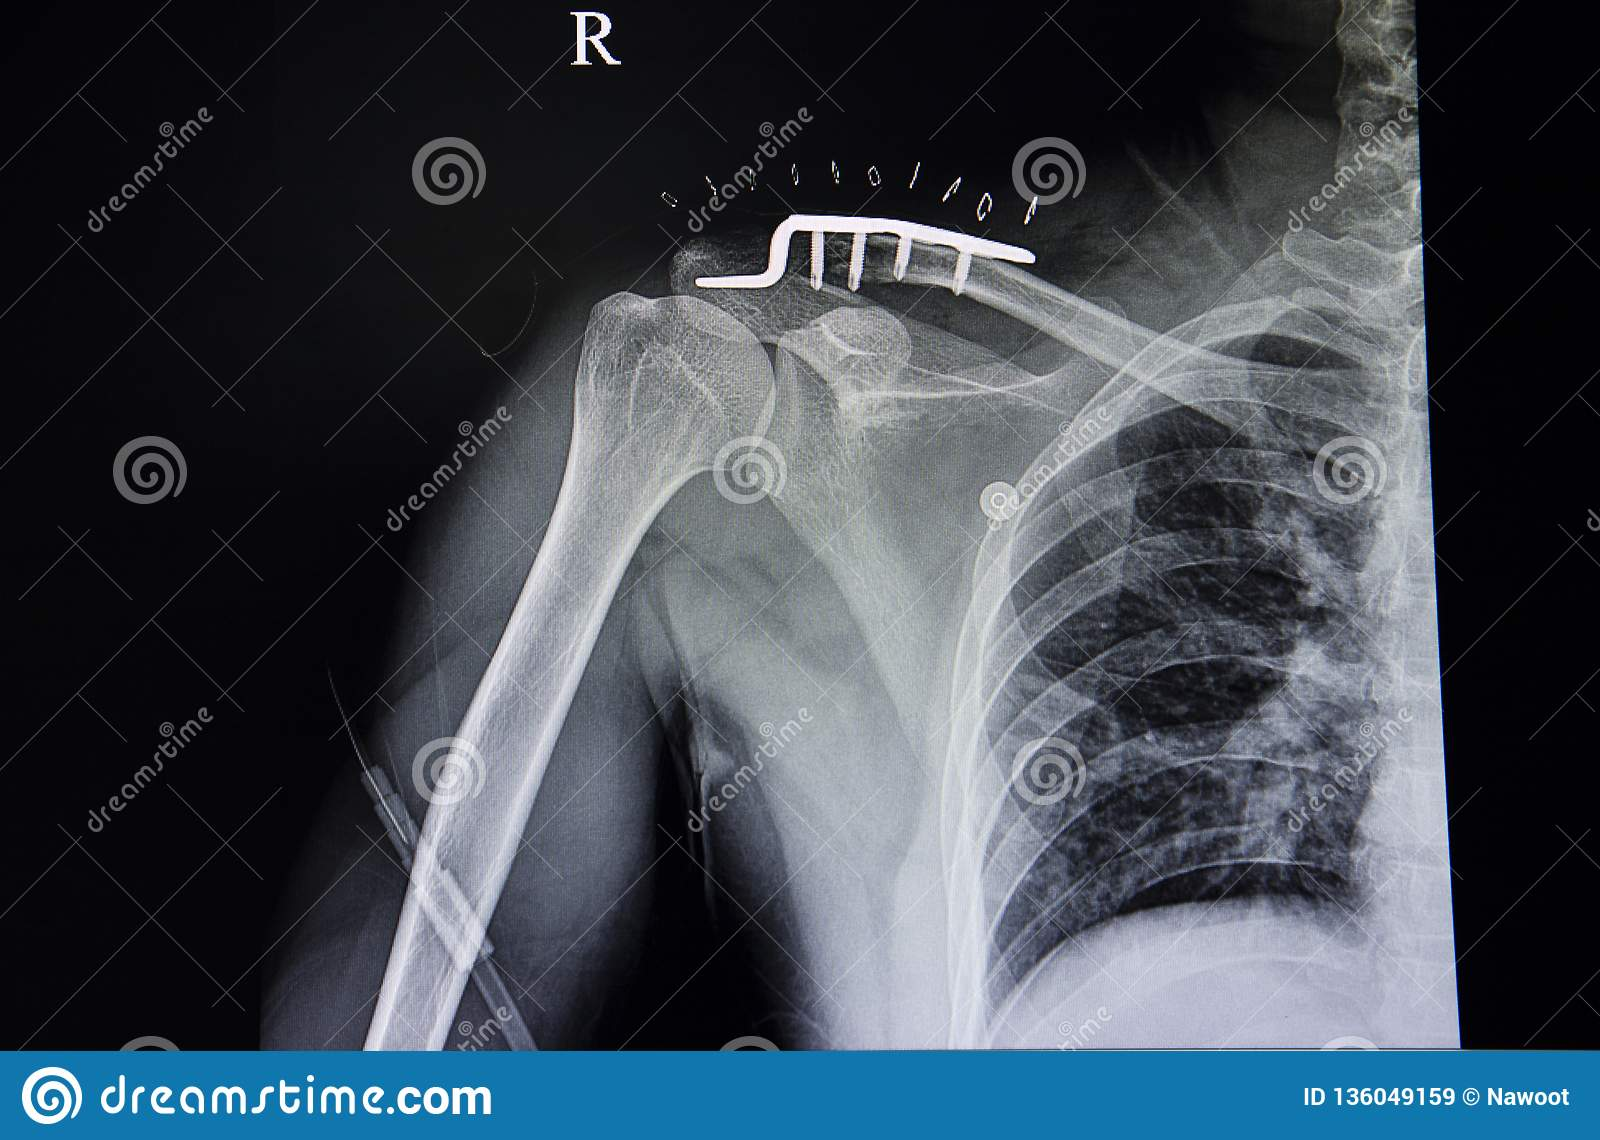 distal clavicle fracture and pulmonary tuberculosis